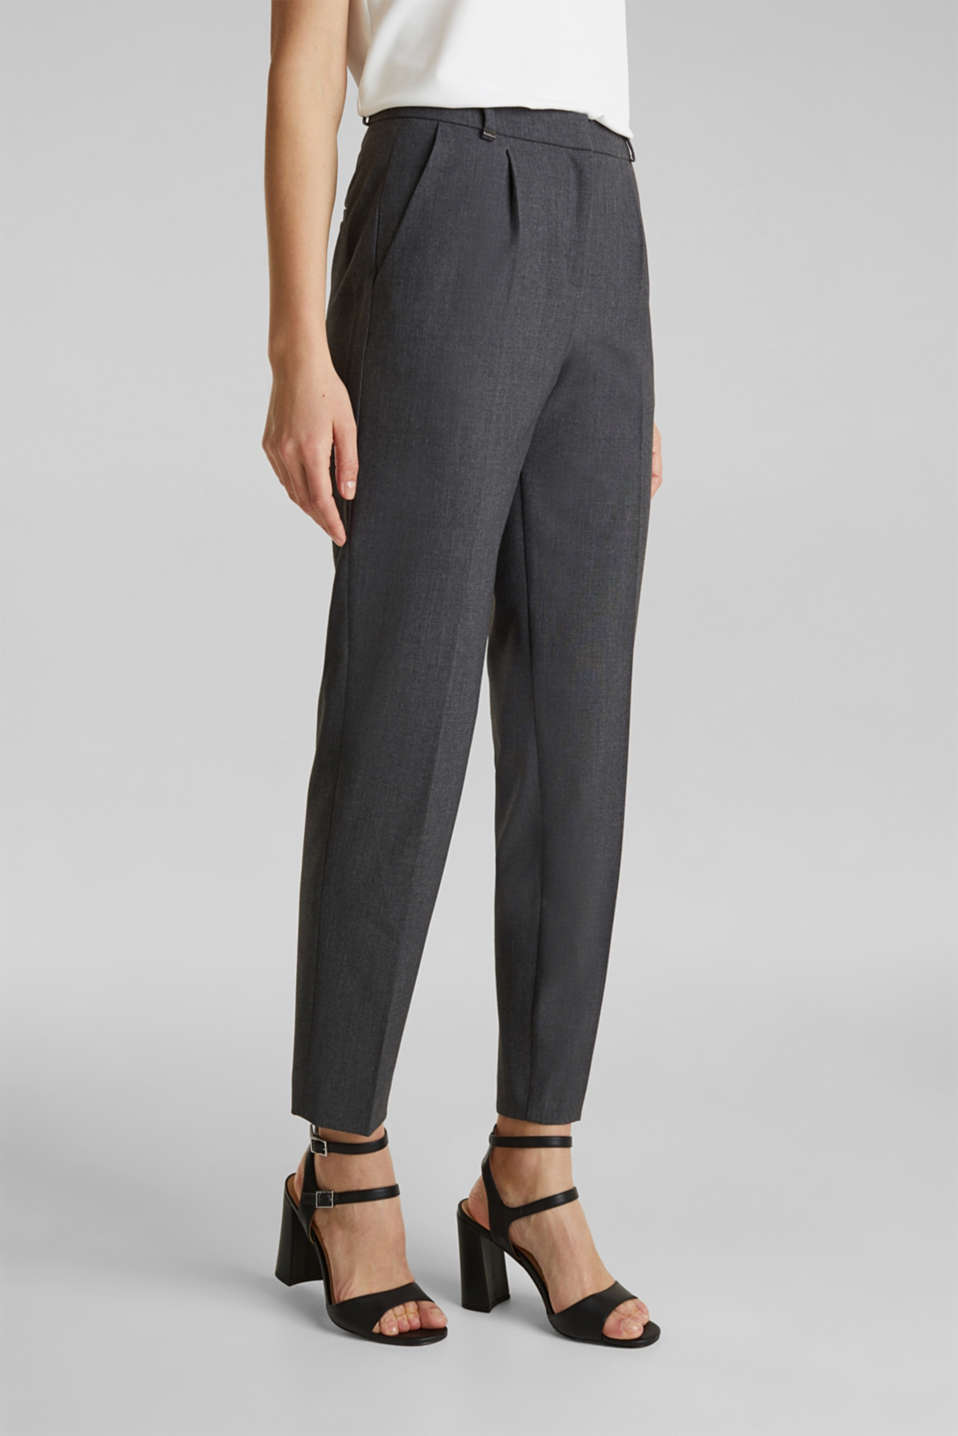 Esprit - PURE BUSINESS Stretch-Hose mit Bundfalten